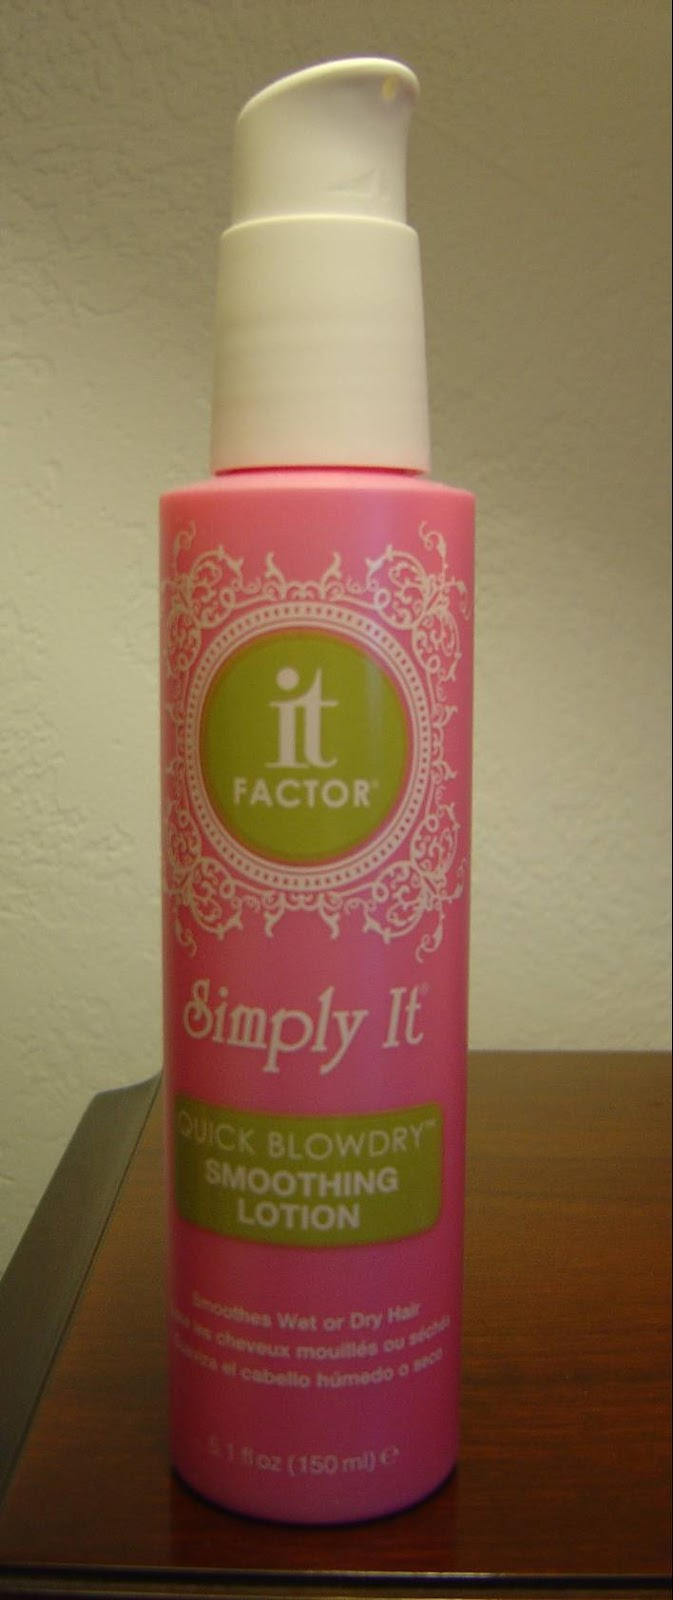 It Factor's Simply It Quick Blowdry Smoothing Lotion.jpeg